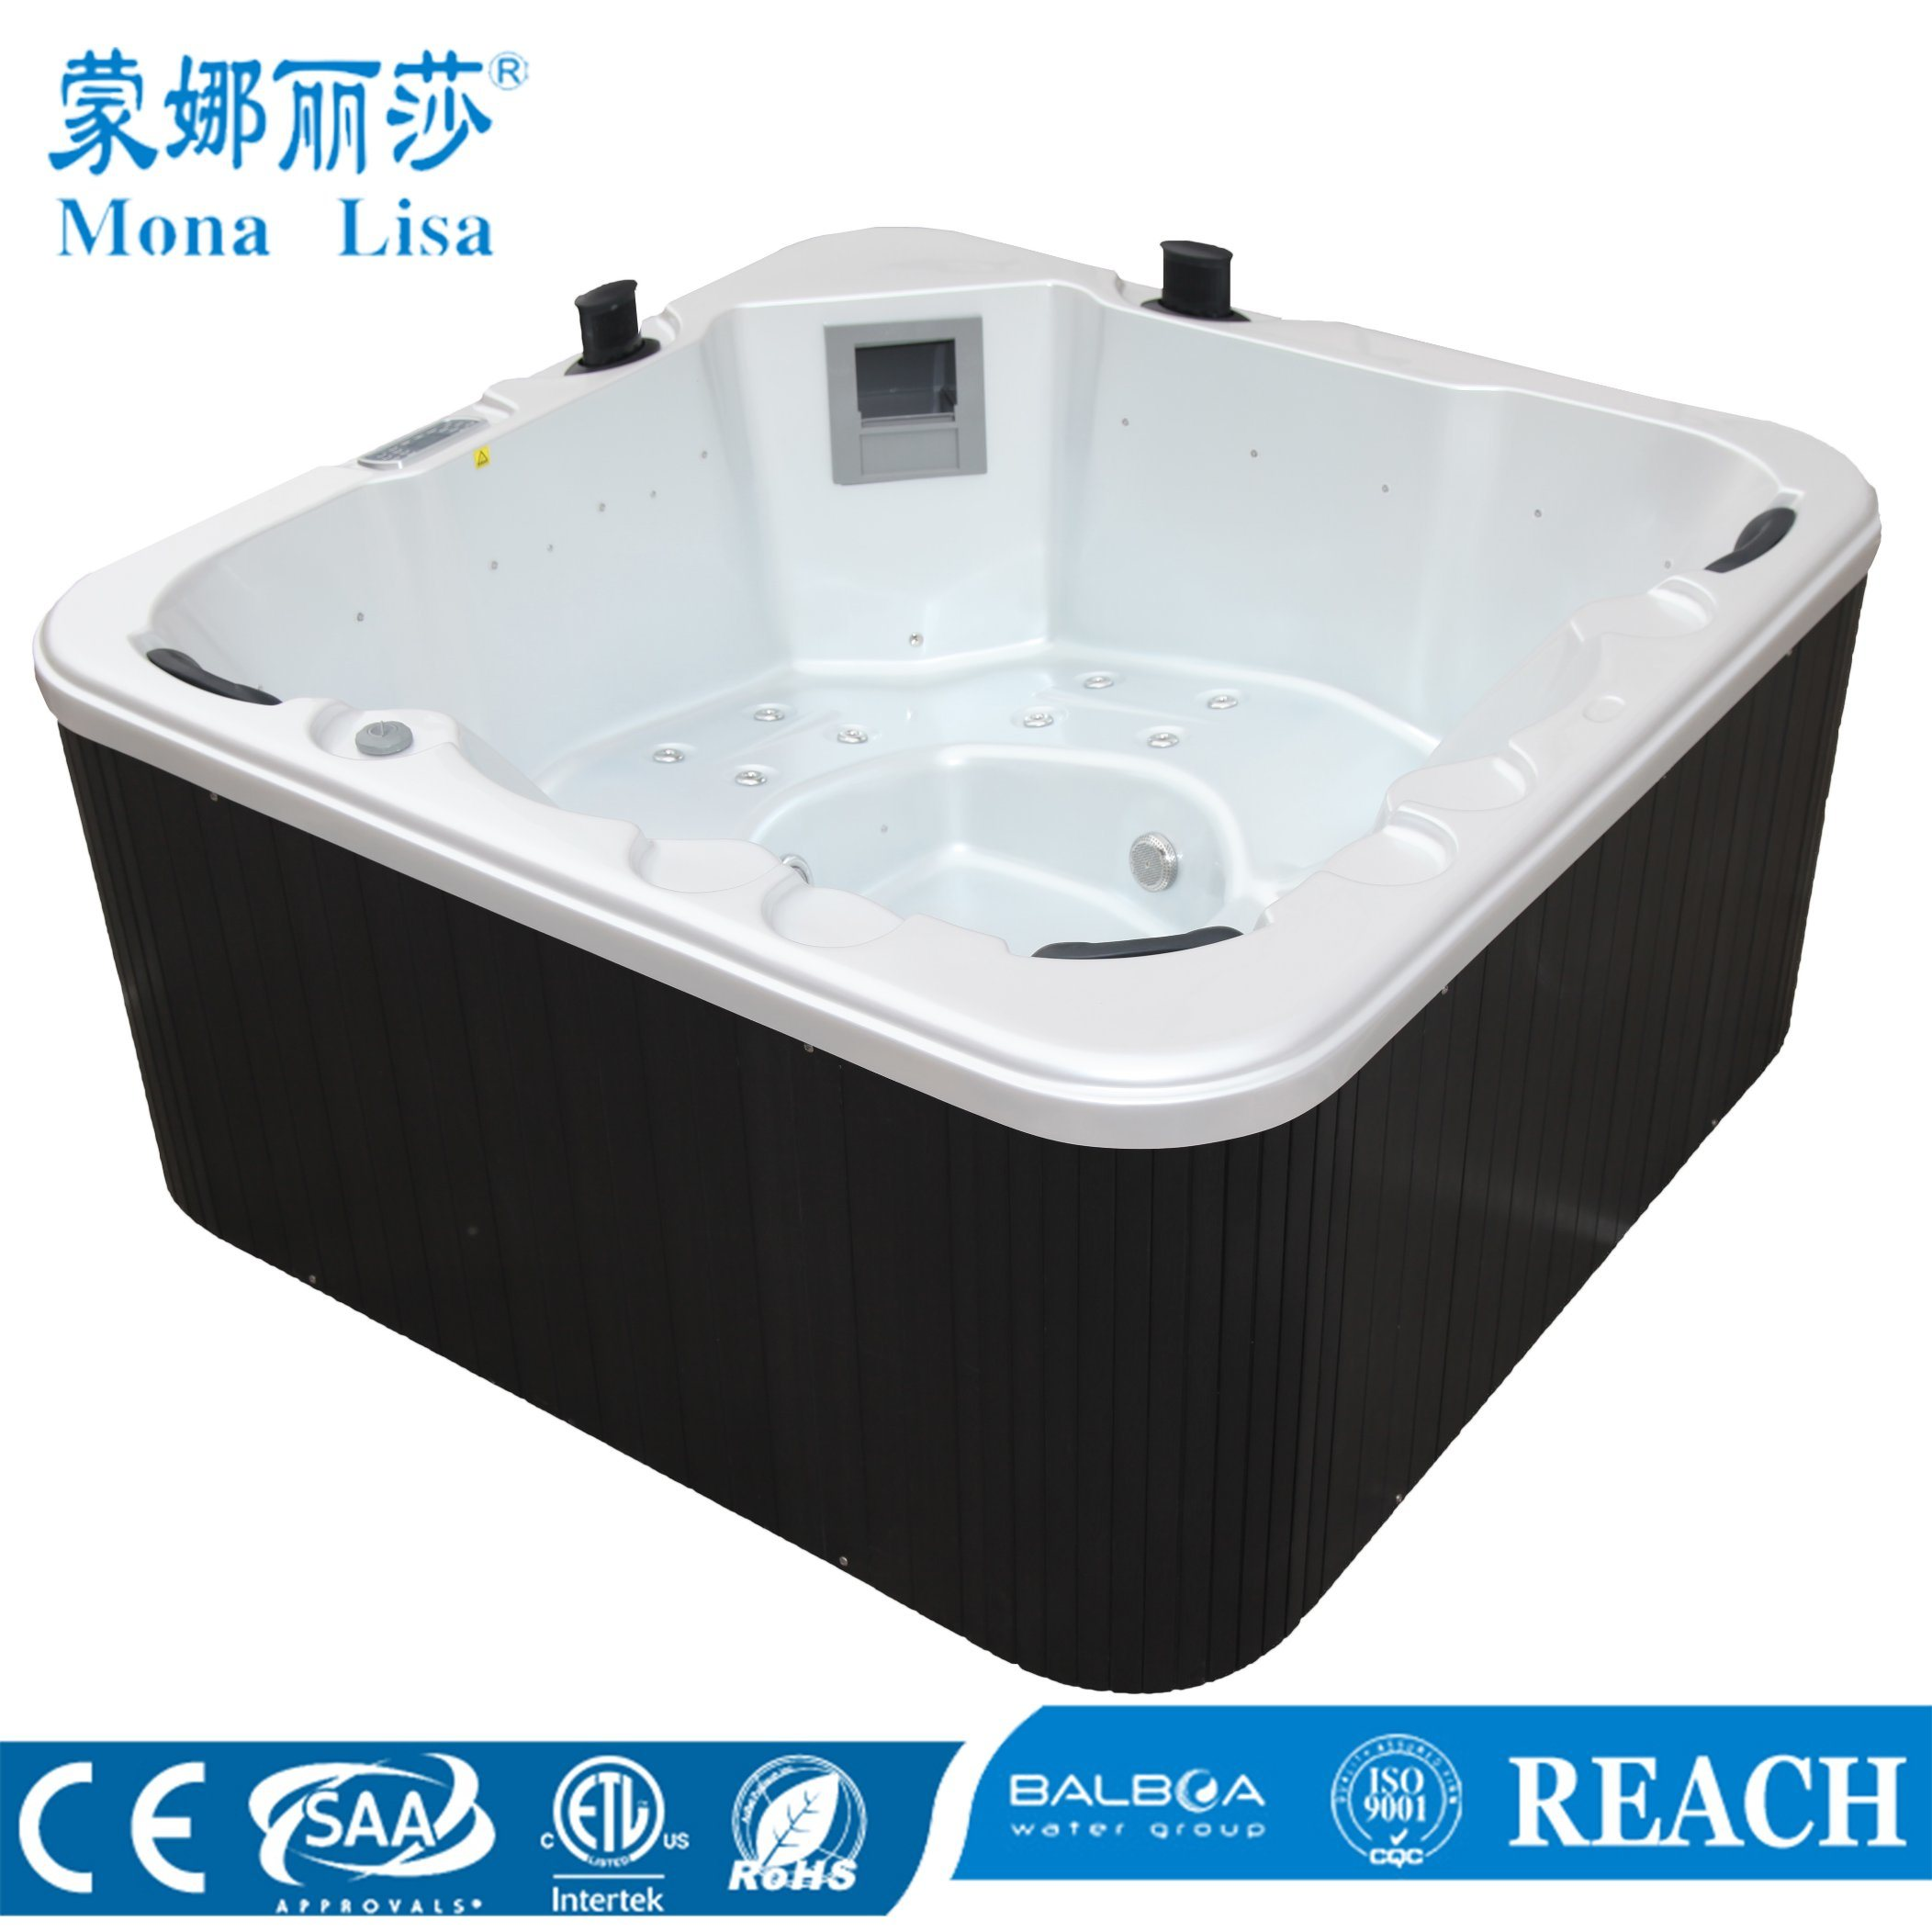 China Outdoor Free Standing Hydro Aqua Air Bubble Jets Whirlpool ...